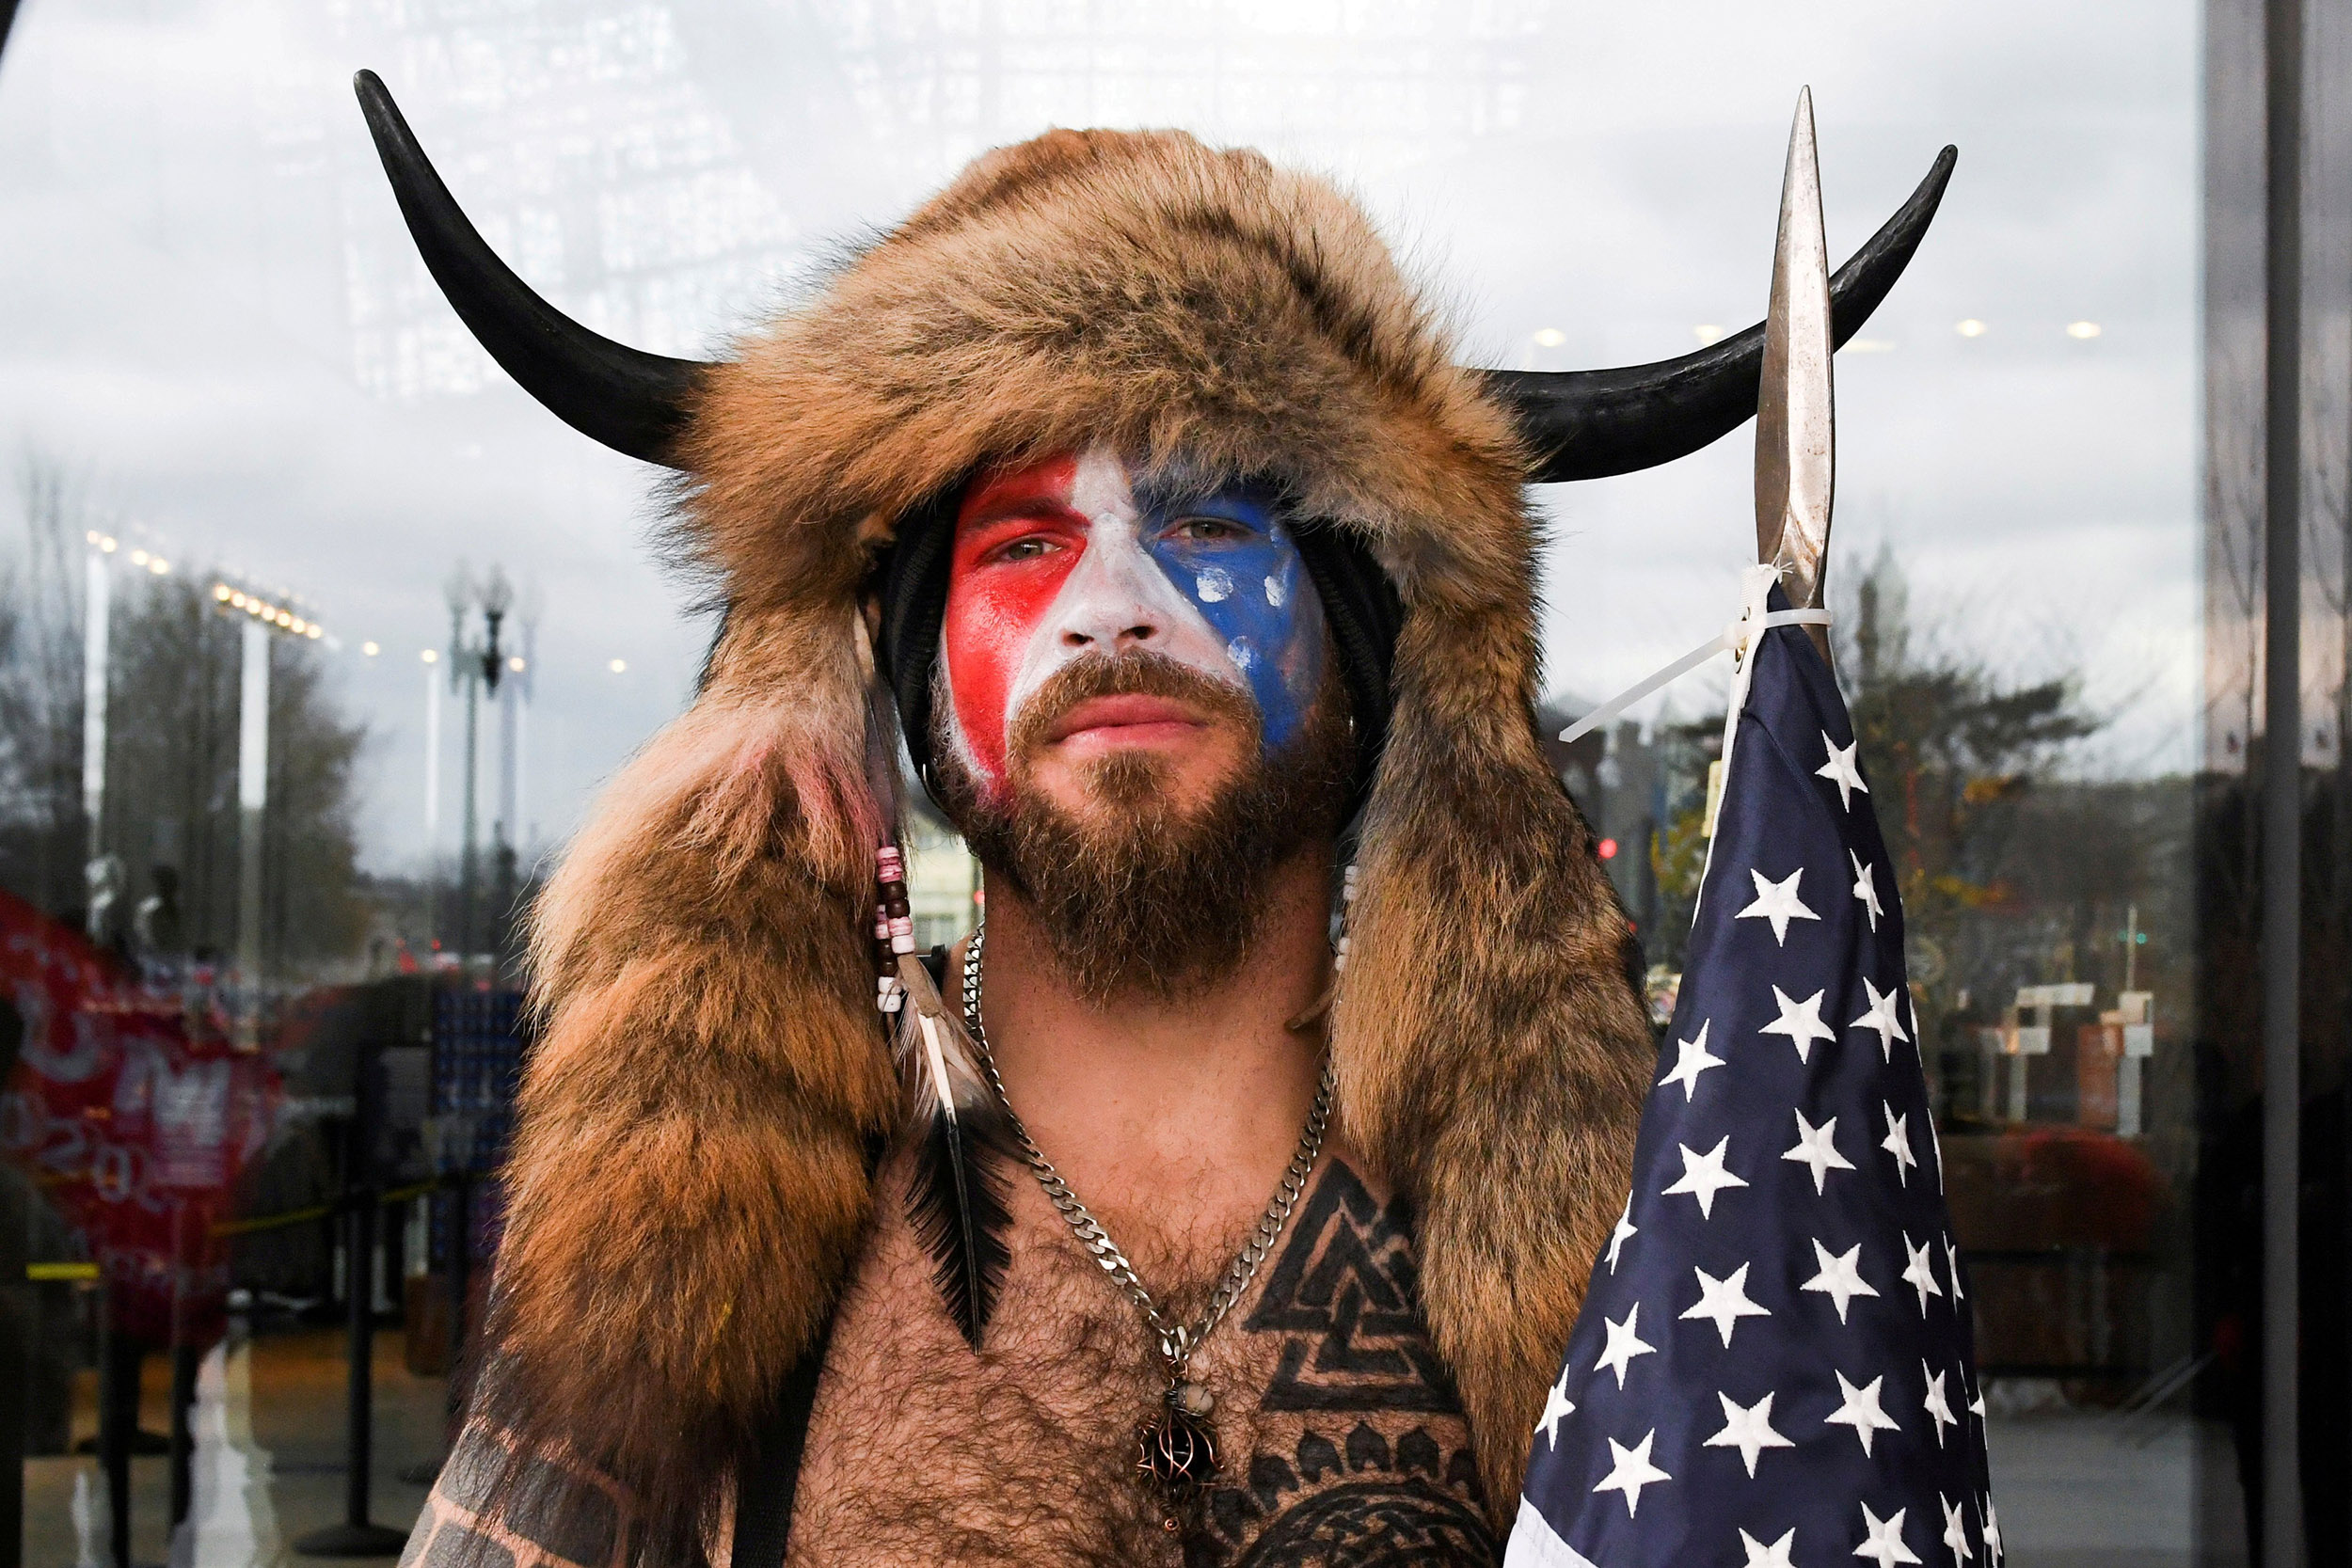 Image: FILE PHOTO: Man poses with his face painted in the colors of the U.S. flag in Washington